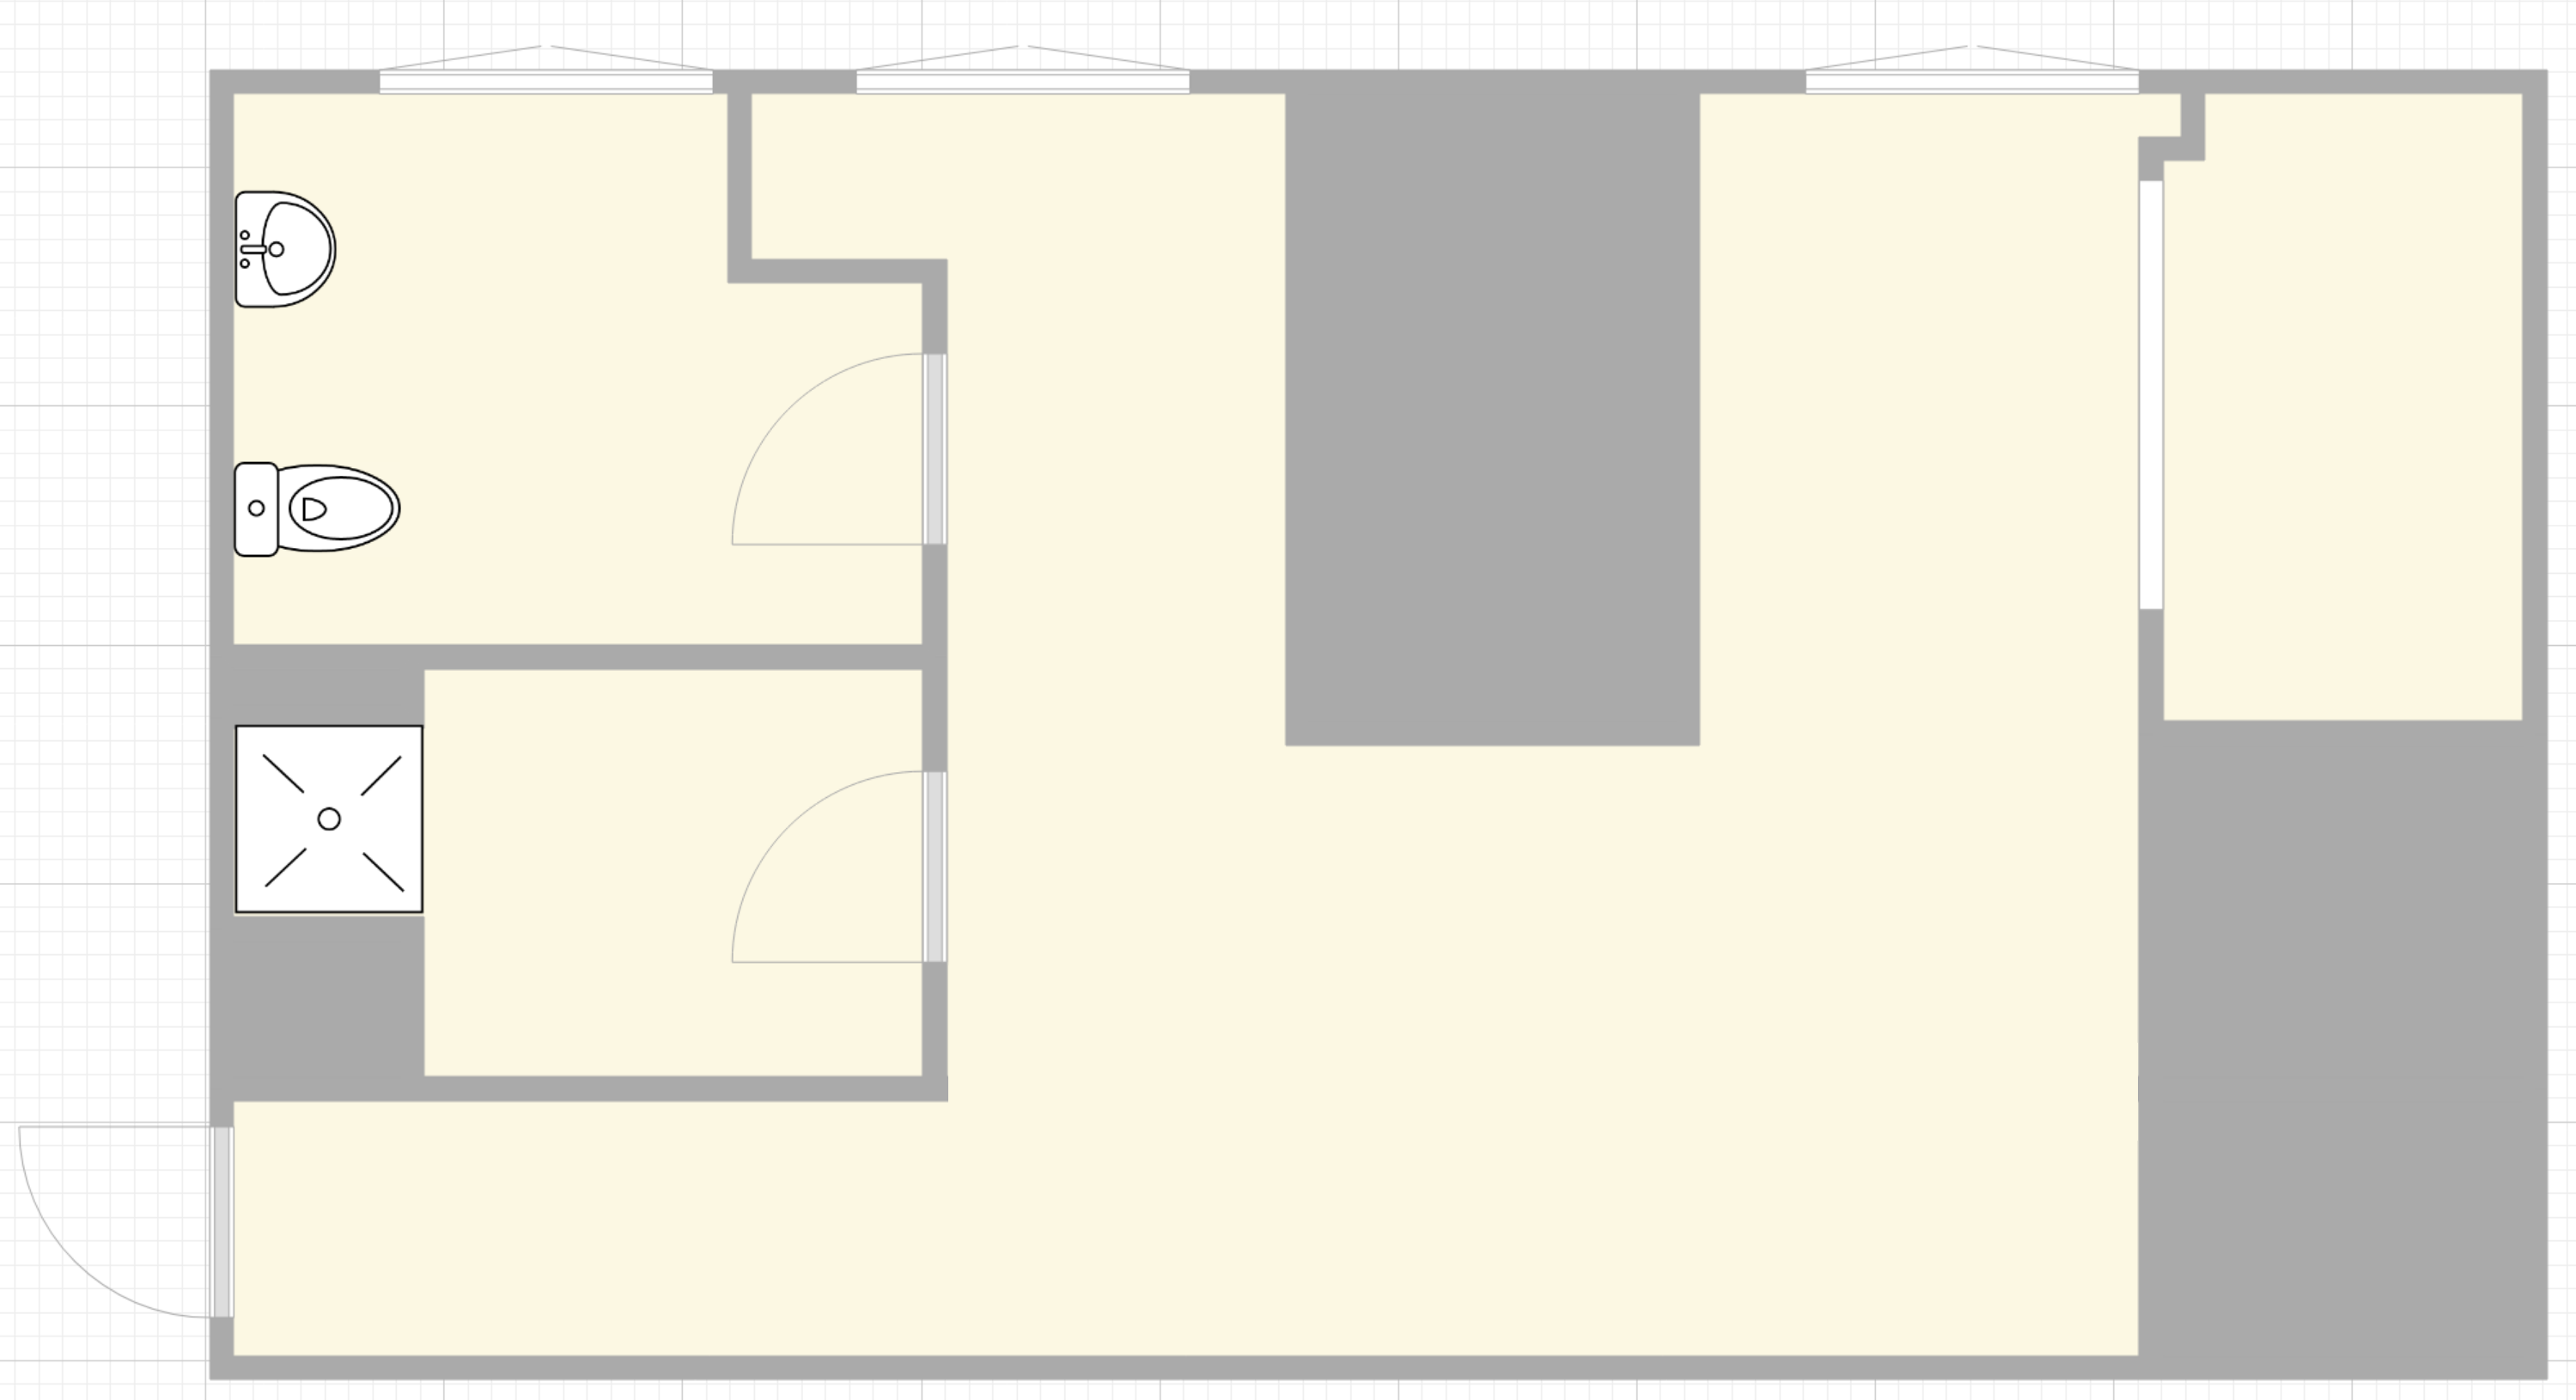 file:57n_upstairs_plan_v2.png